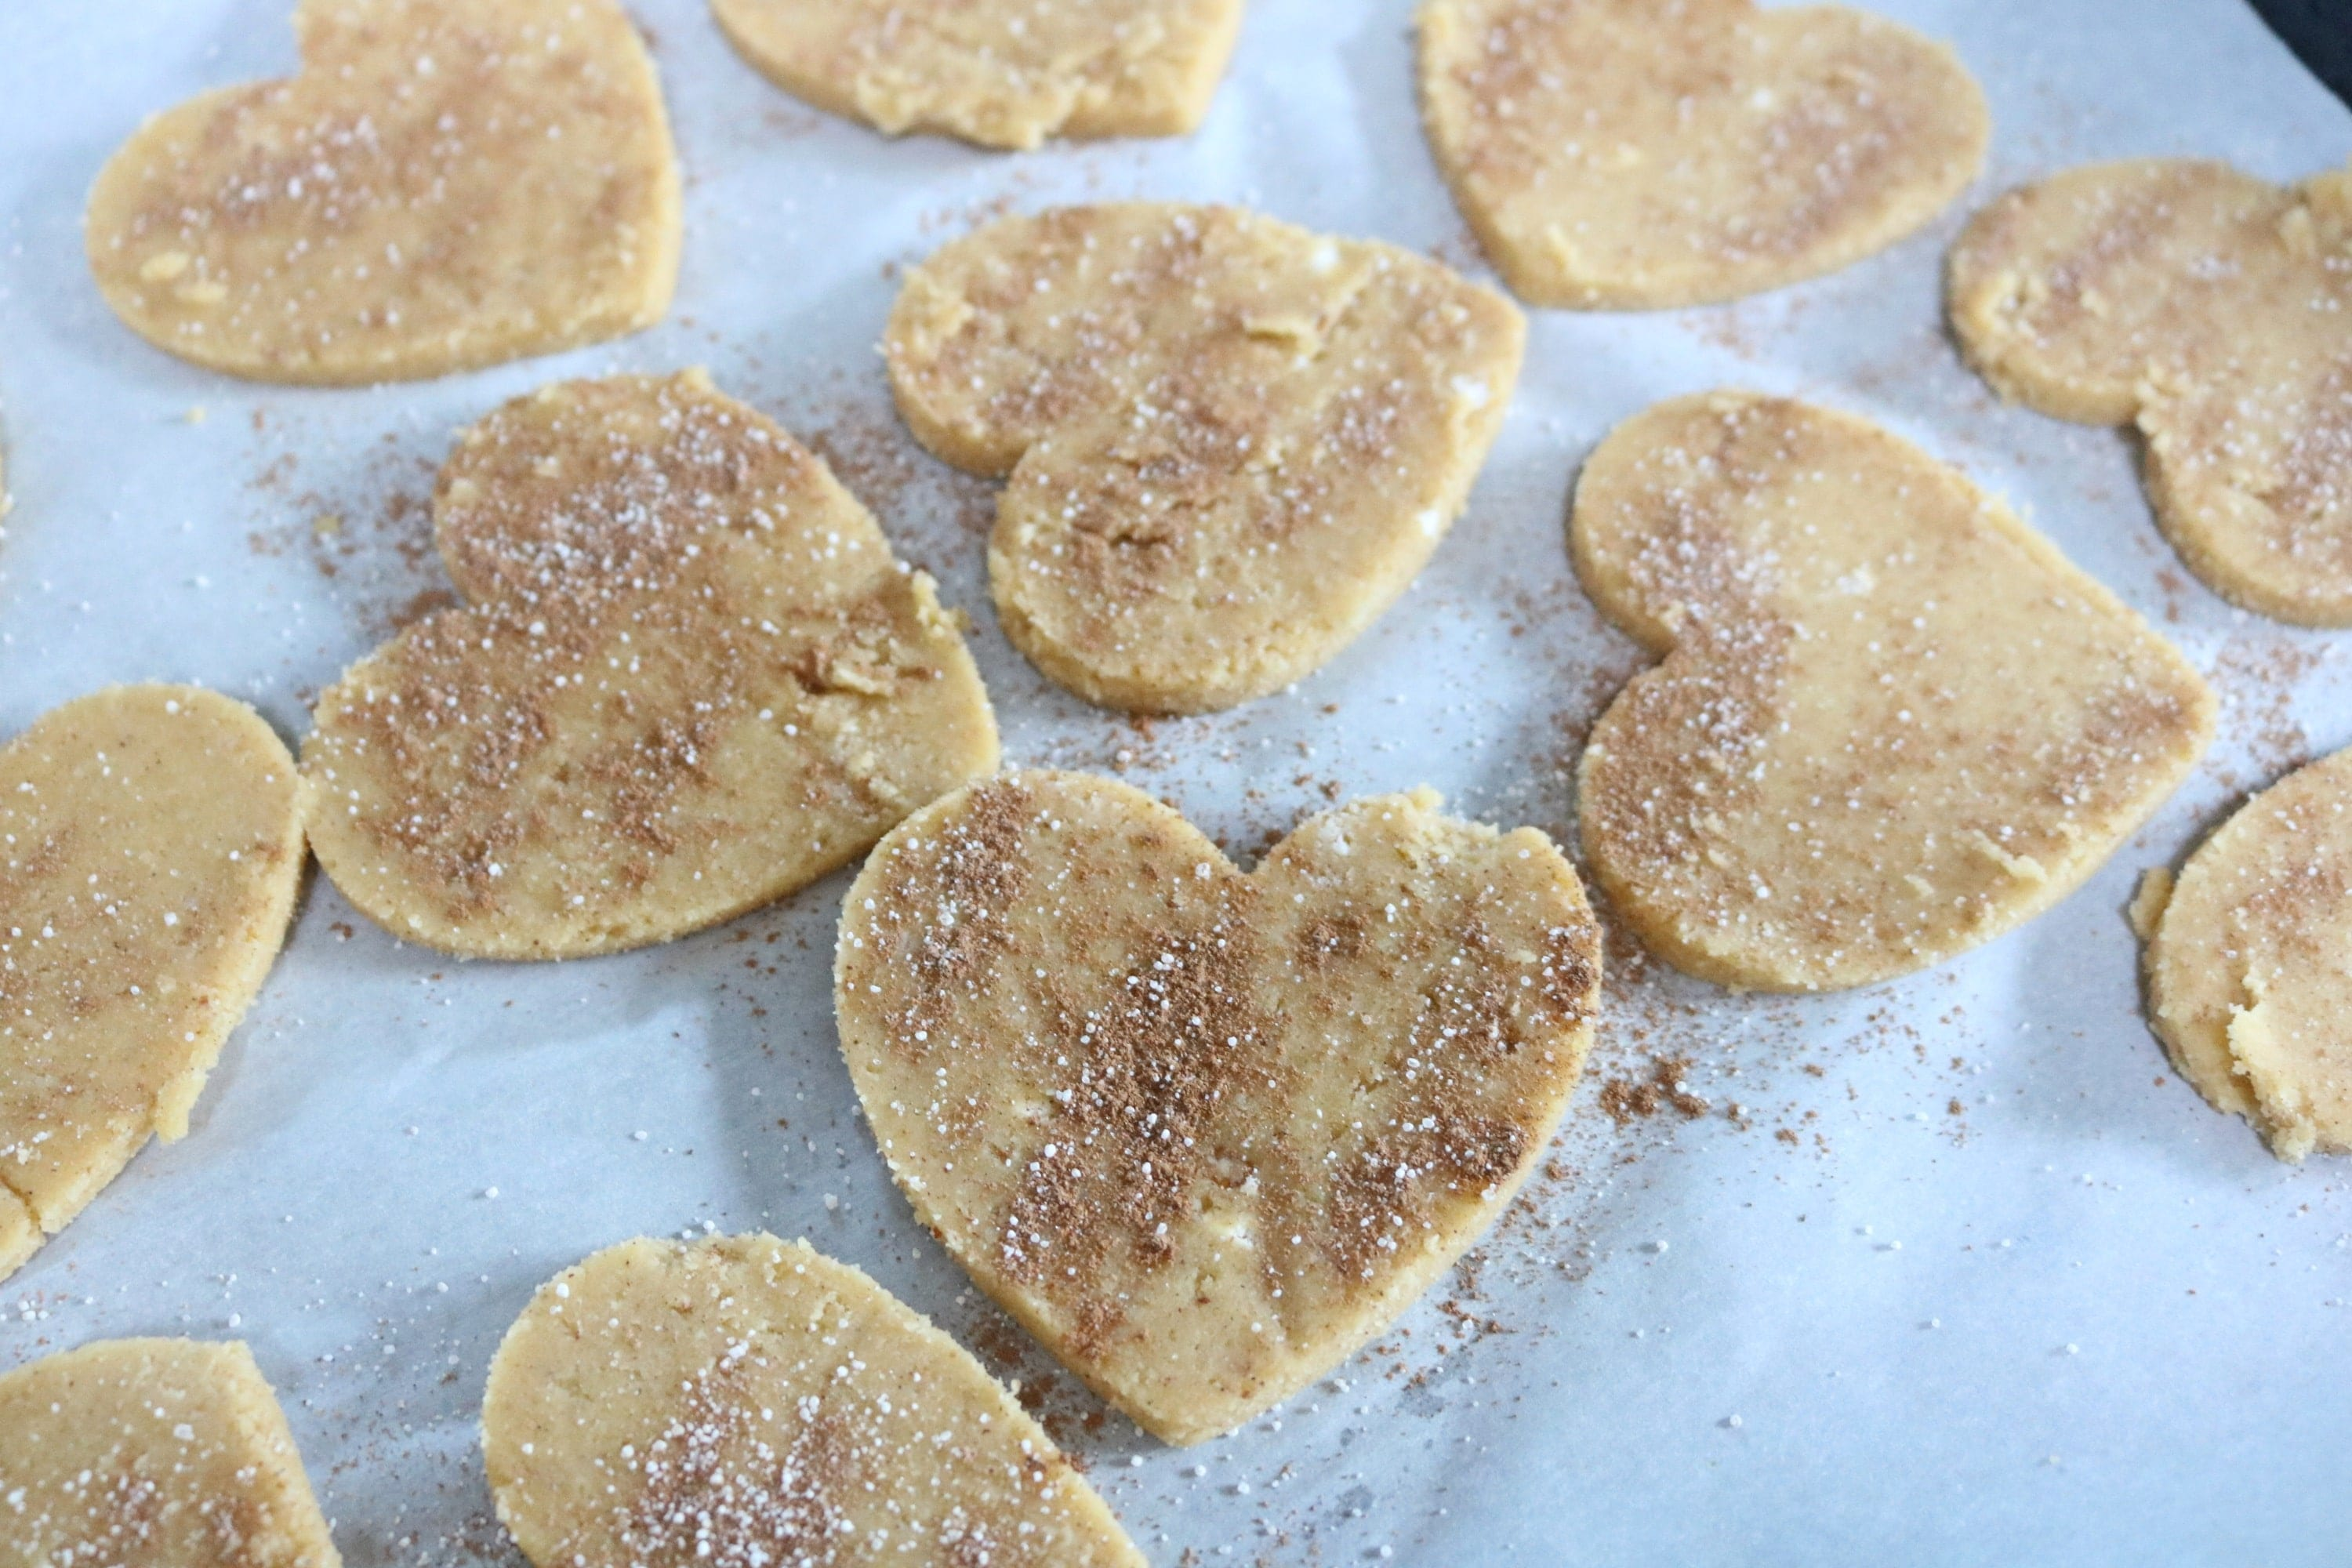 Heart shaped, gluten-free sugar cookies on parchment paper sprinkled with sugar and cinnamon